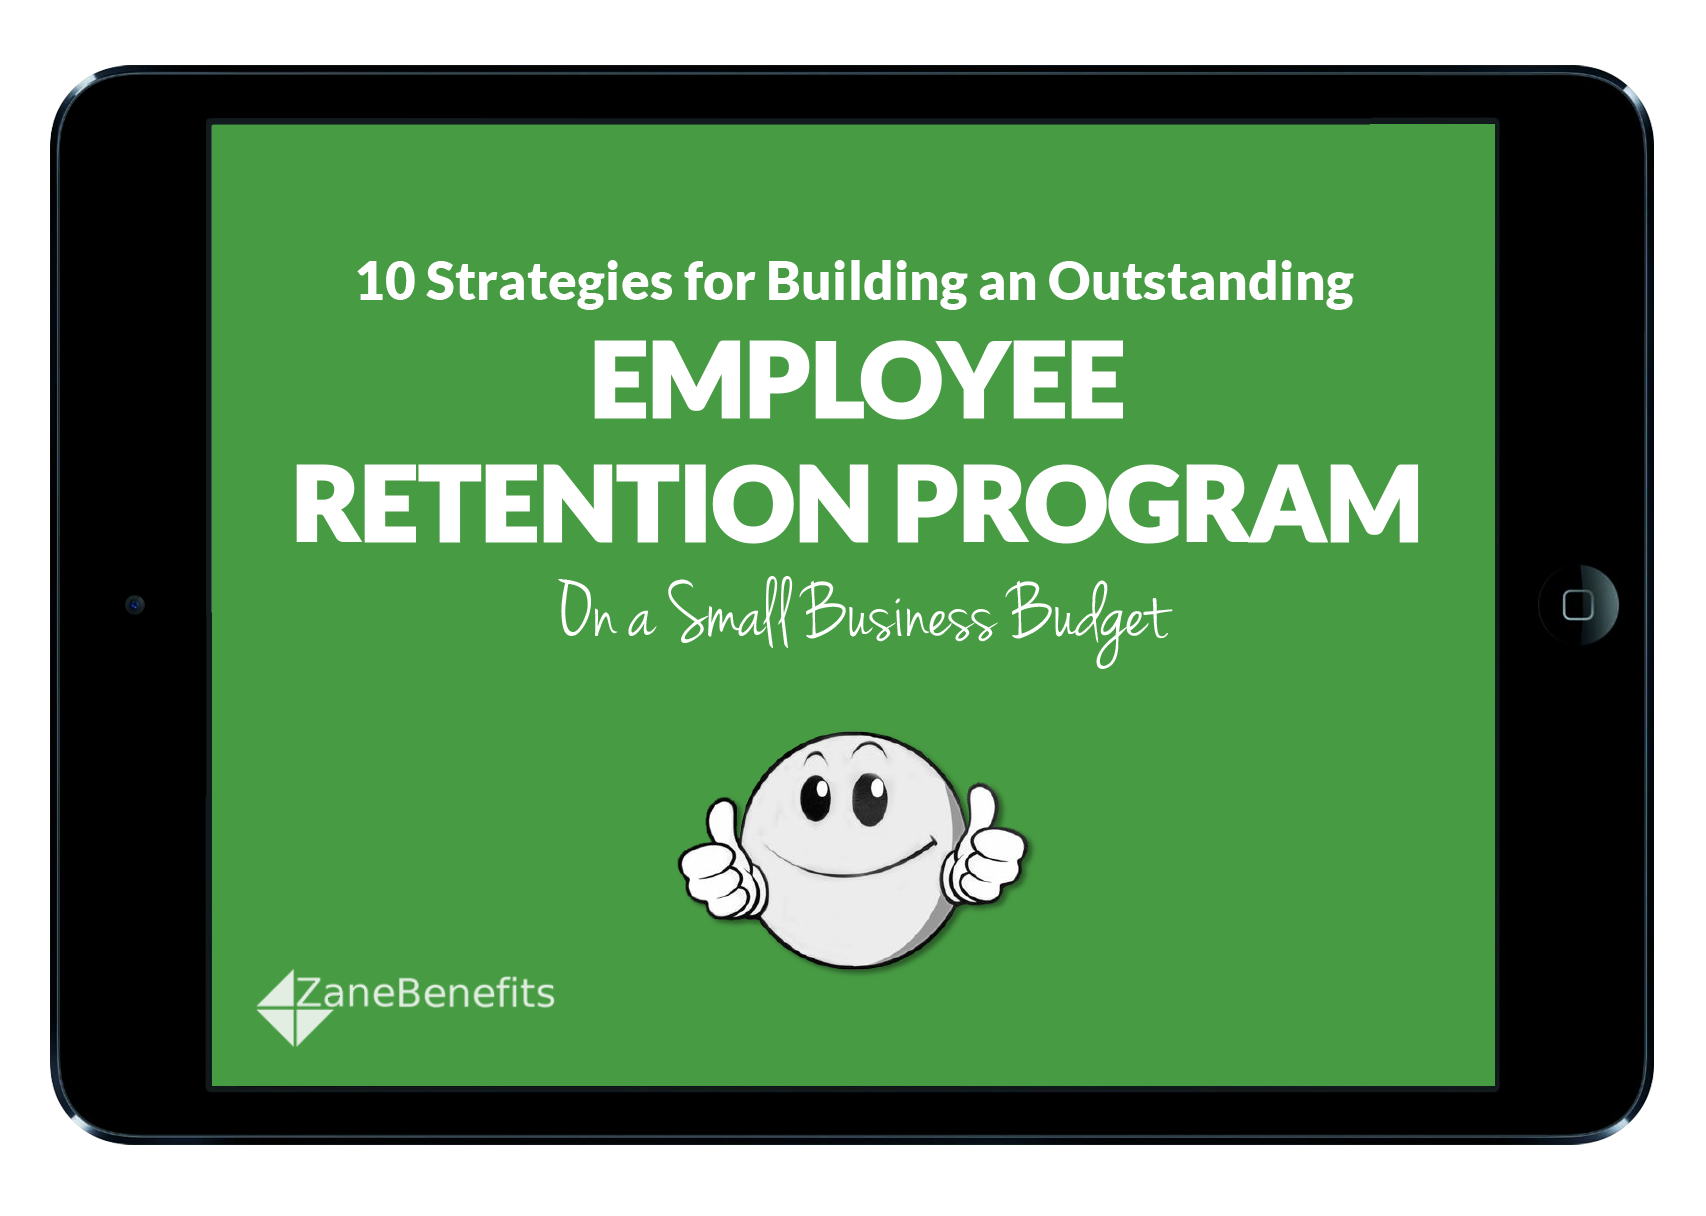 10 Strategies for Building an Outstanding Employee Retention Program